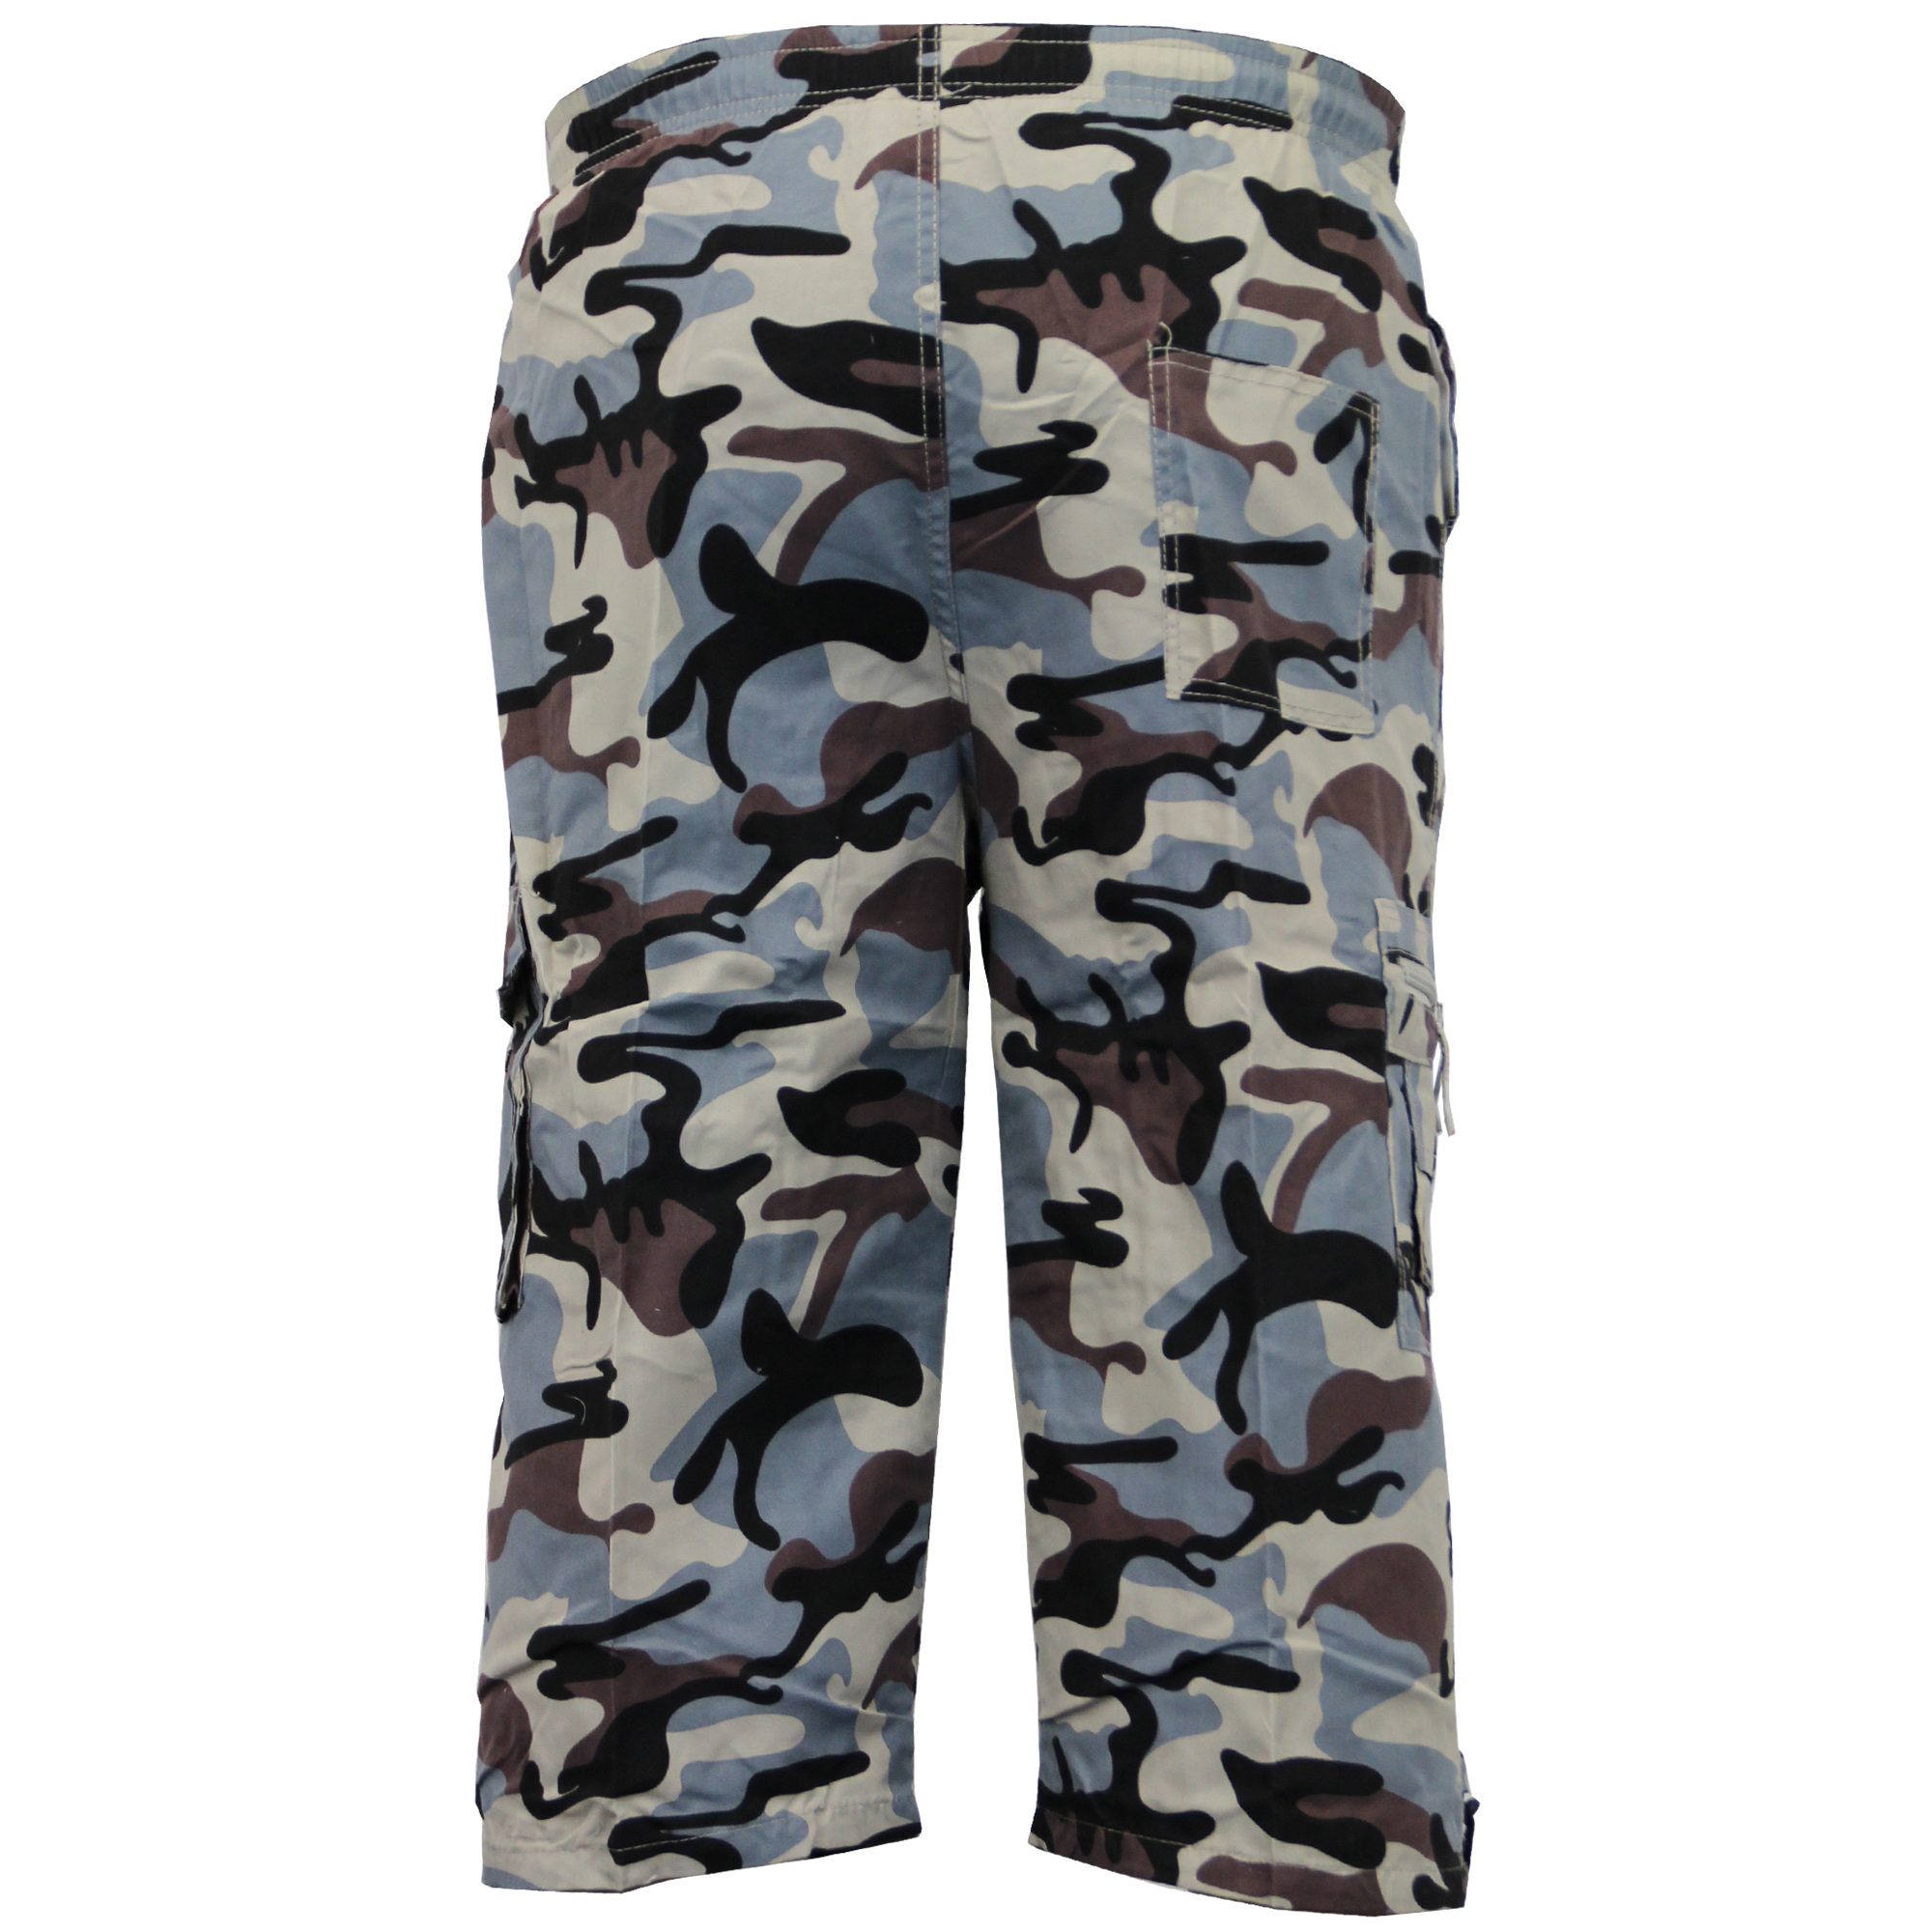 Mens-Camouflage-Combat-Cargo-Shorts-3-4-Length-Army-Military-Sports-Summer-New thumbnail 6